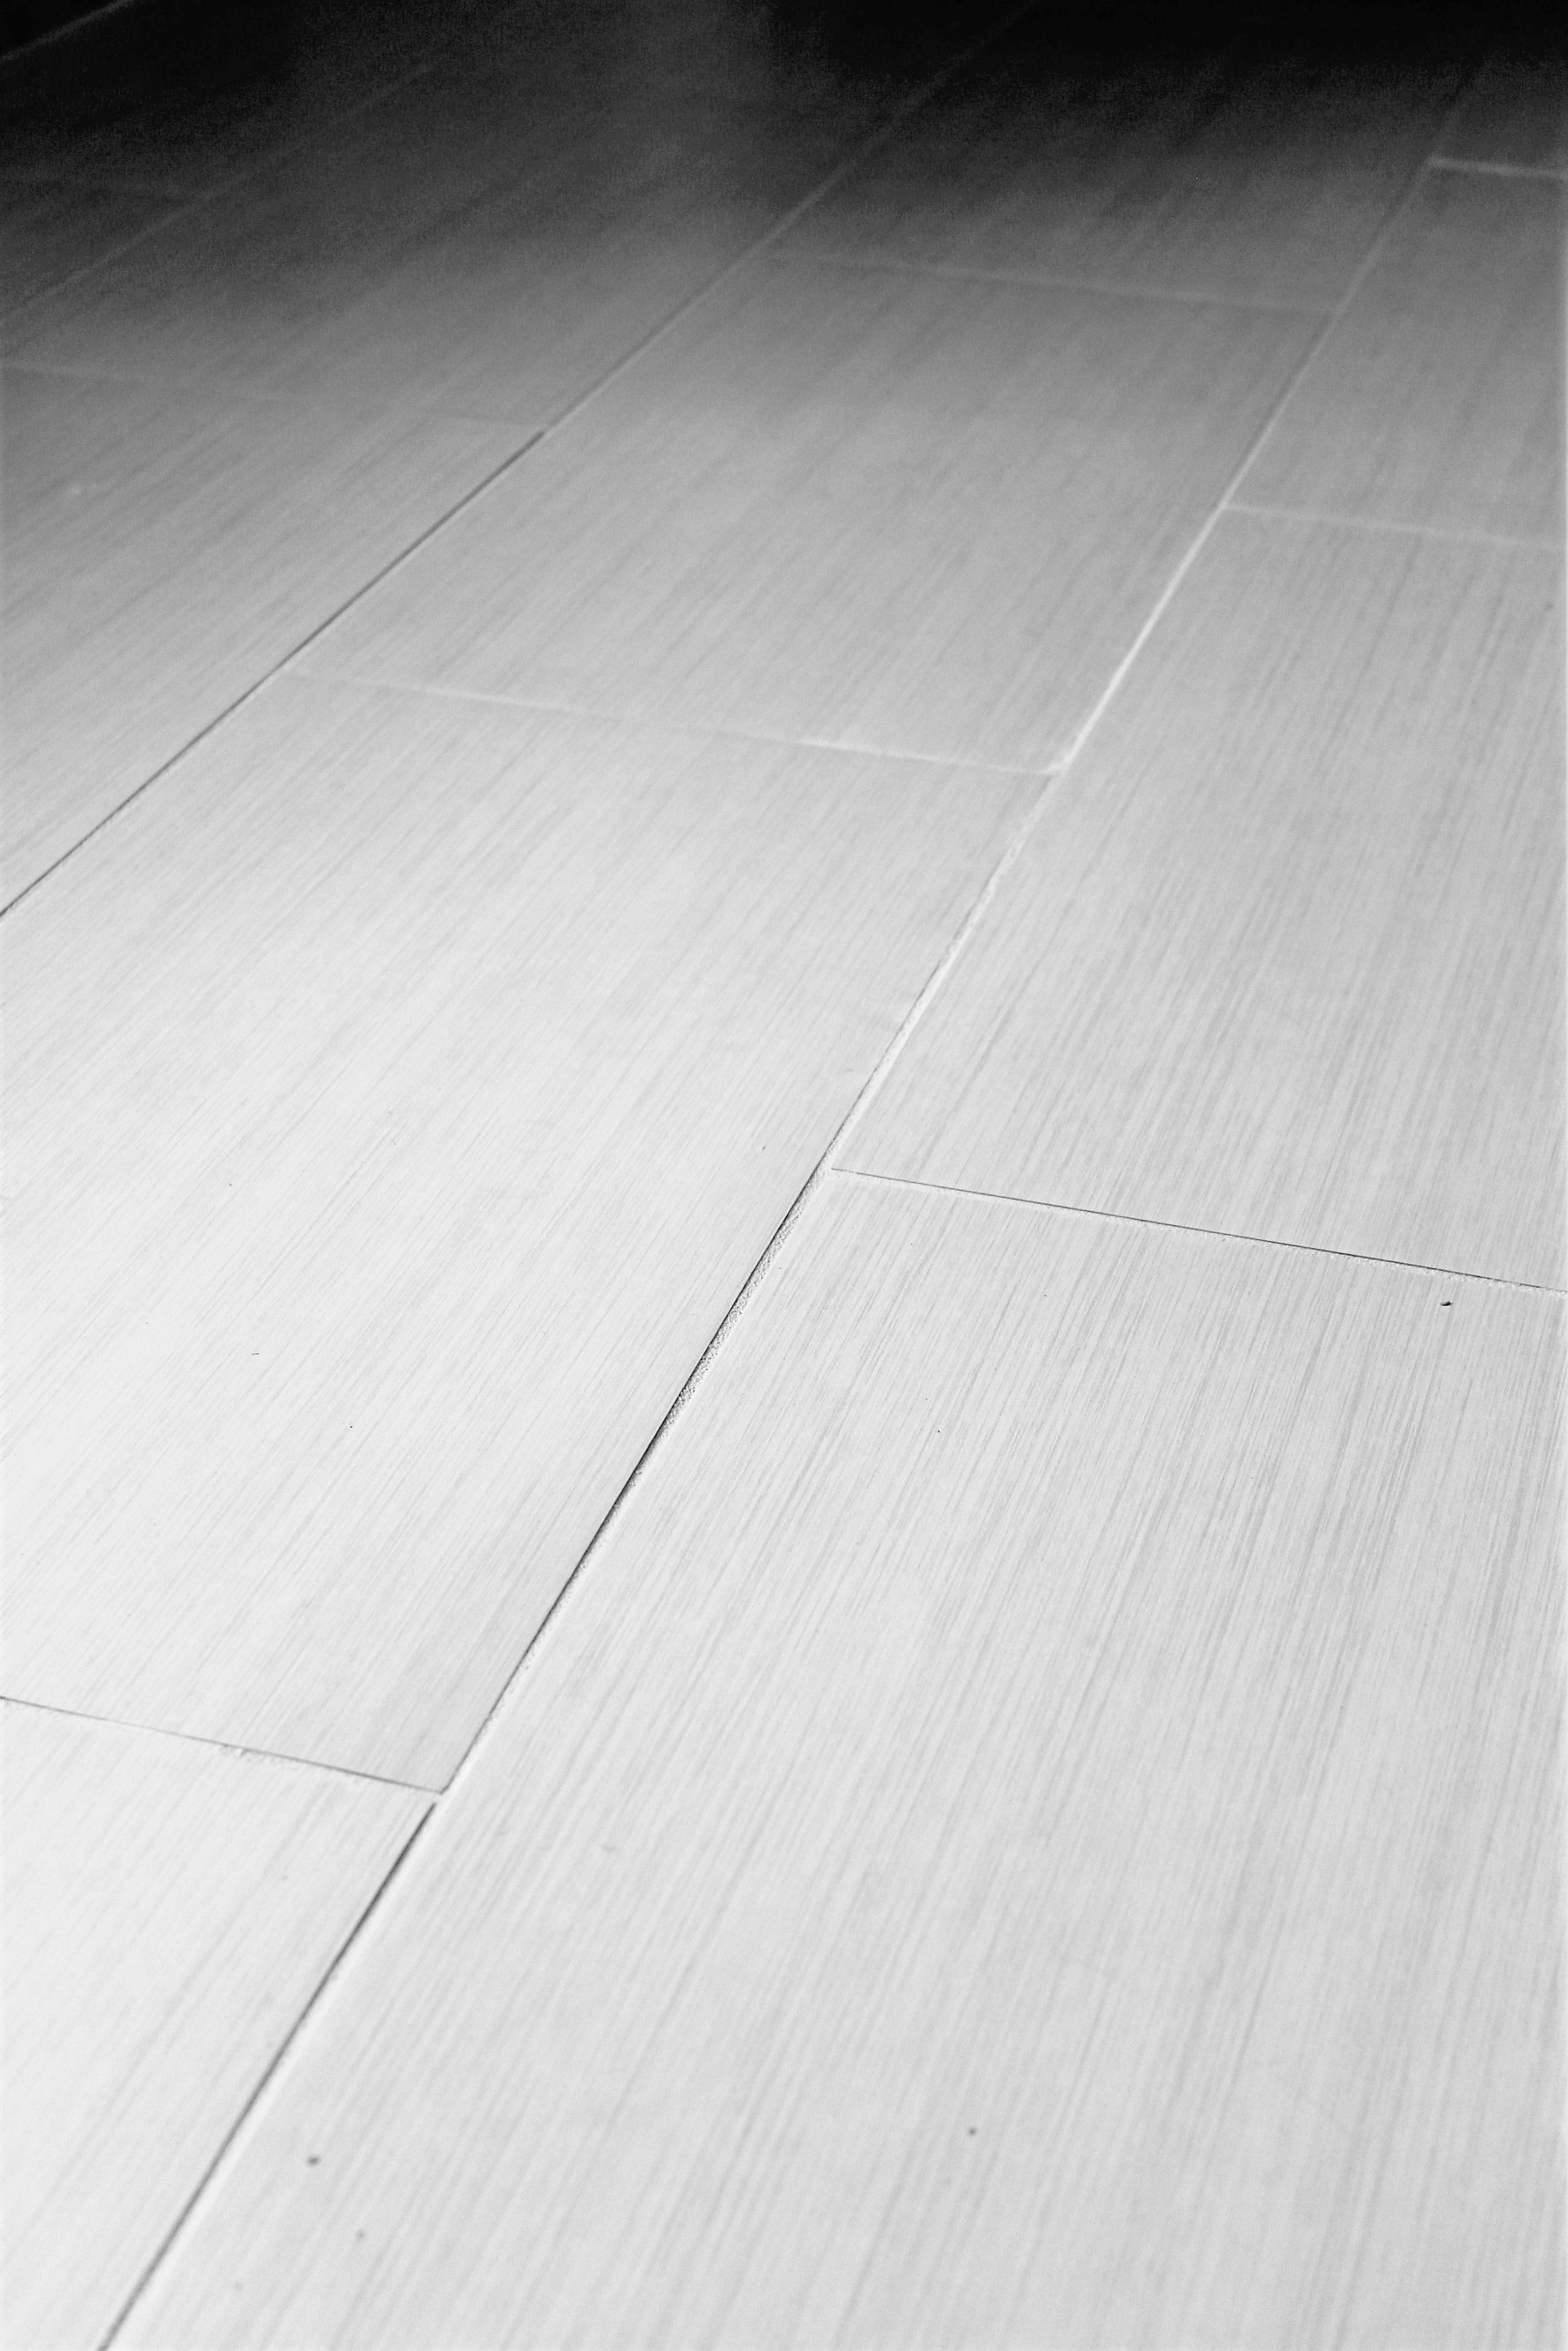 General Ceramics Bamboo White 12 X 24 Floor Tile Flooring Kitchen Tools Design Bamboo Flooring